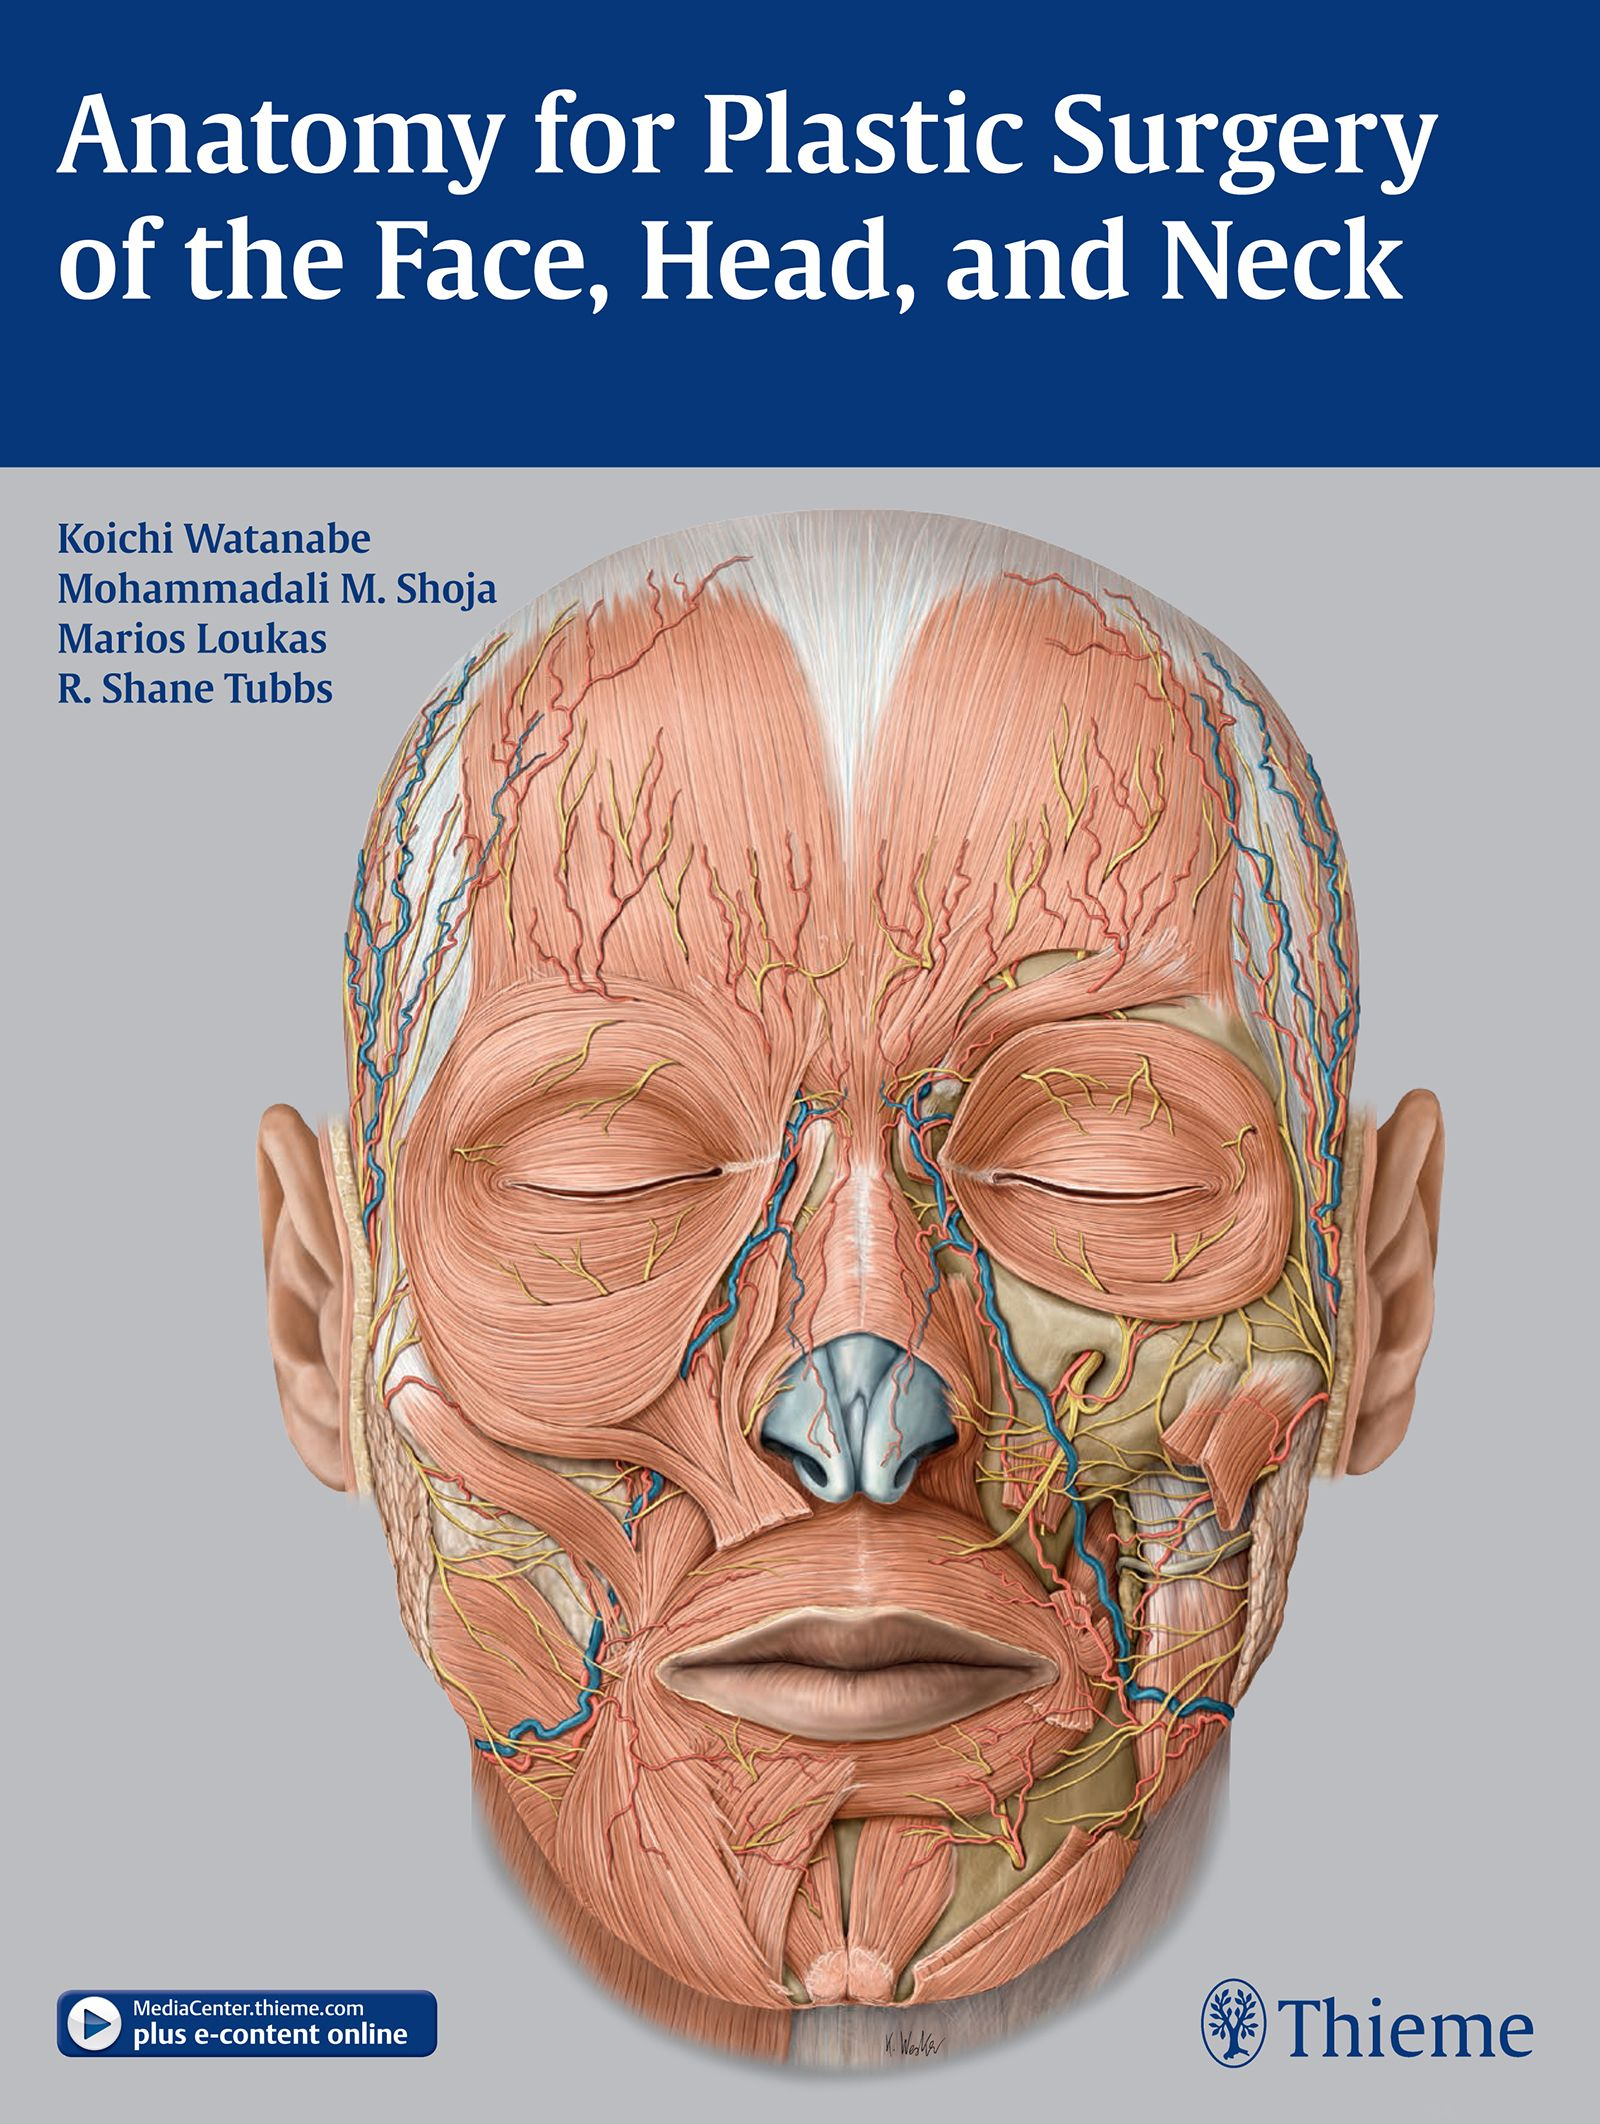 Anatomy for Plastic Surgery of the Face, Head, and Neck book ...